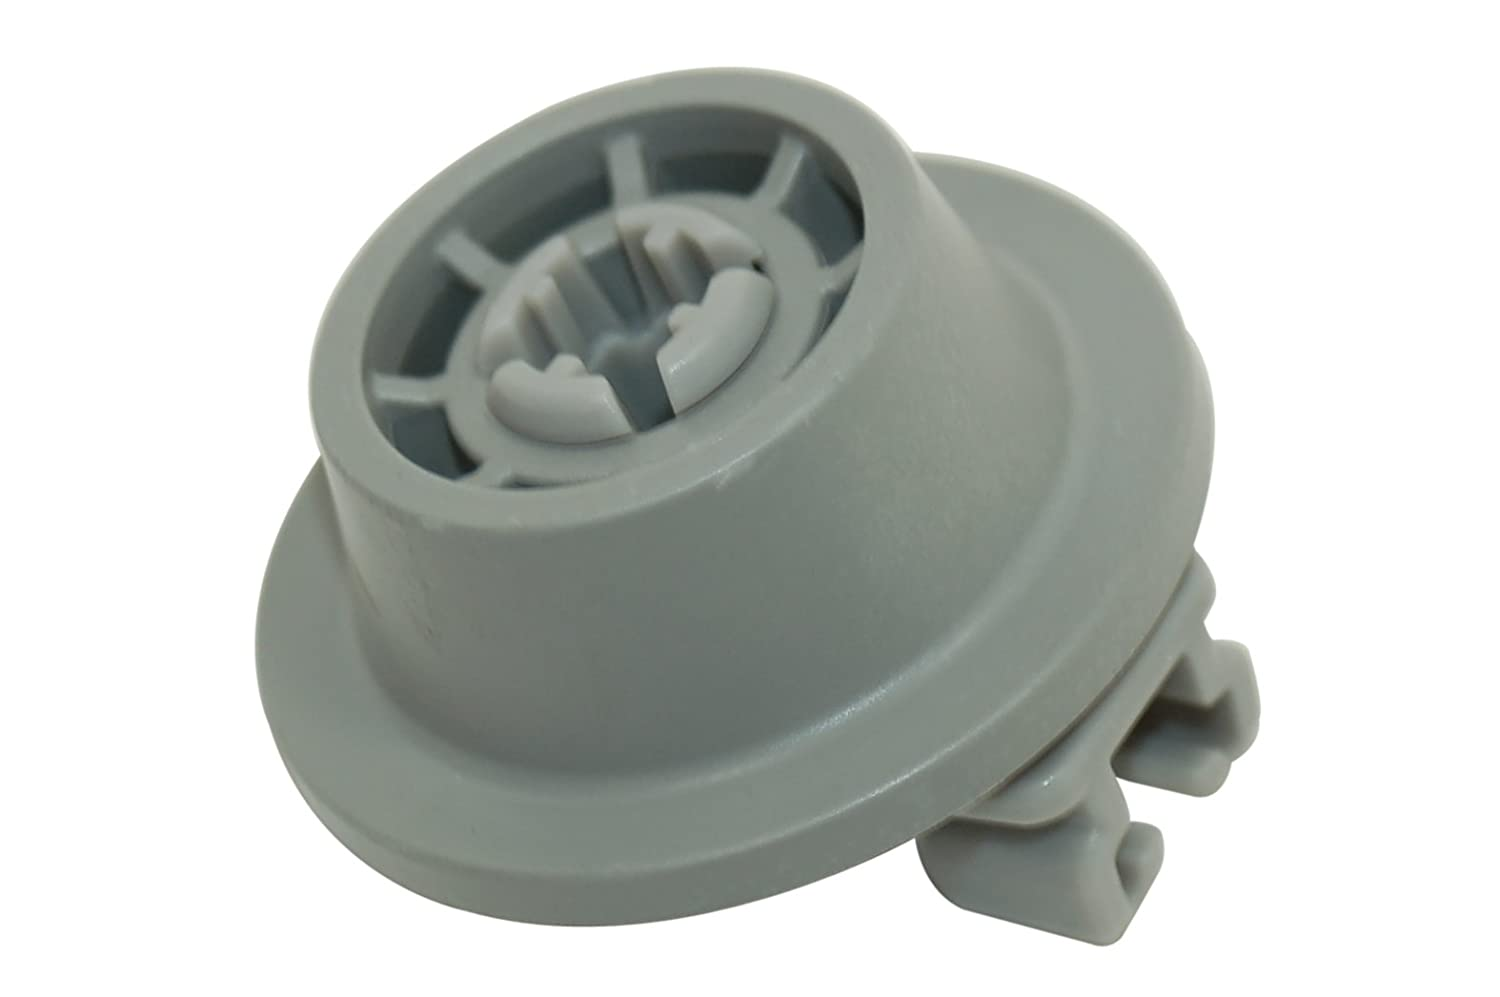 Bosch Neff Dishwasher Wheel. Genuine Part Number 611475 [Energy Class A+++] Universal 5054680393964